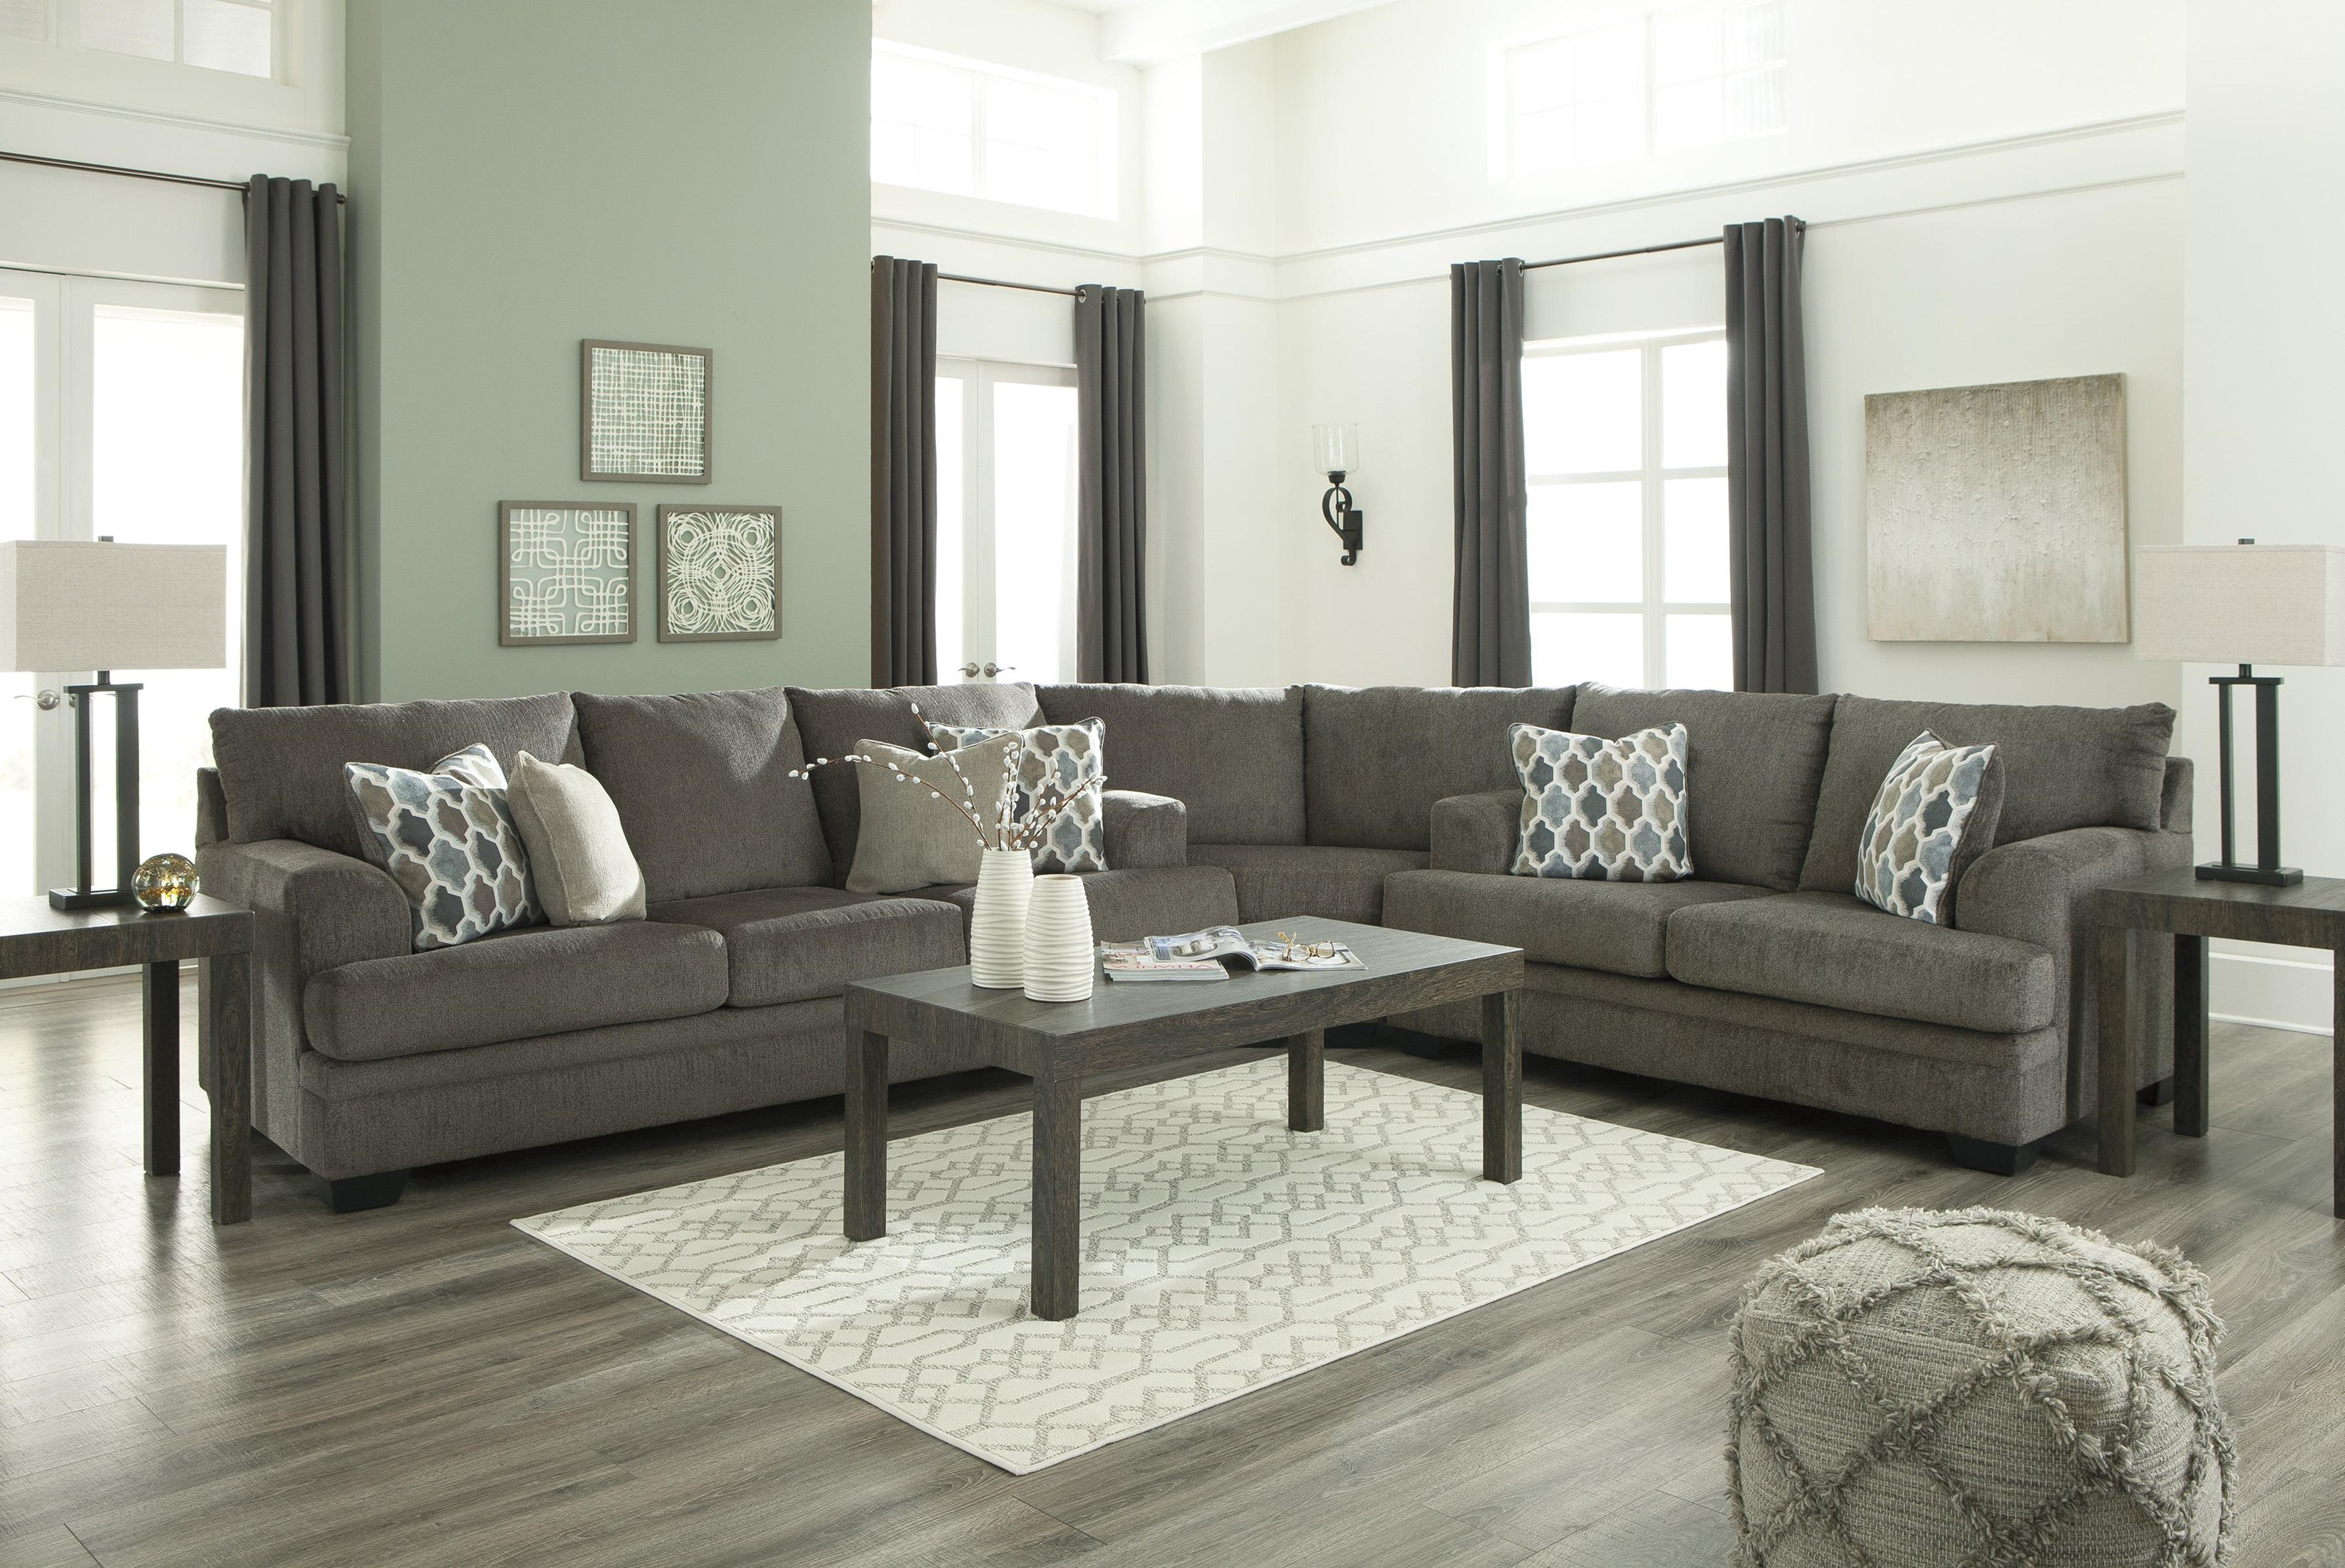 Dorsten 3 PC Sectional and Recliner Set by Signature Design by Ashley at Sam Levitz Furniture